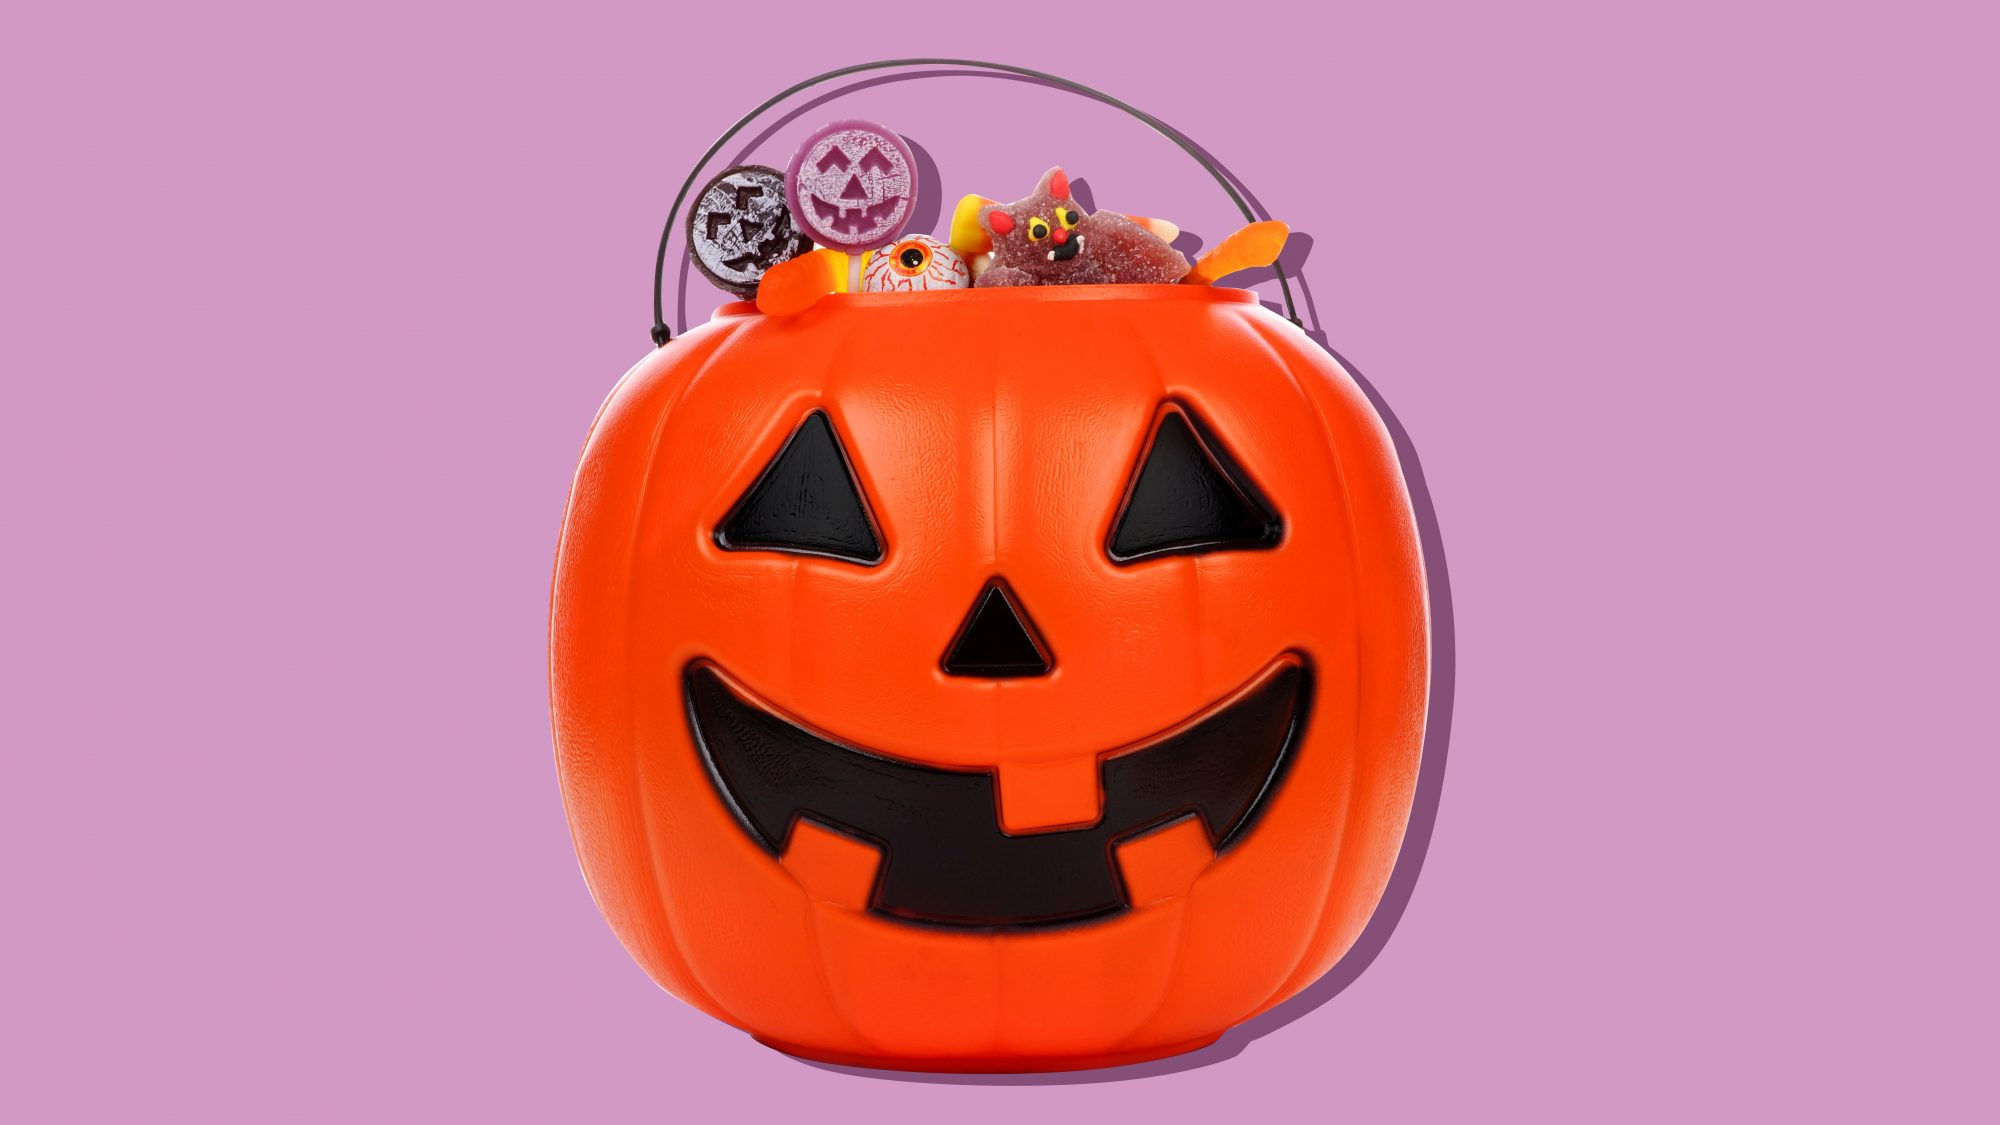 how old is too old to trick or treat? picture of jack-o'-lantern with candy